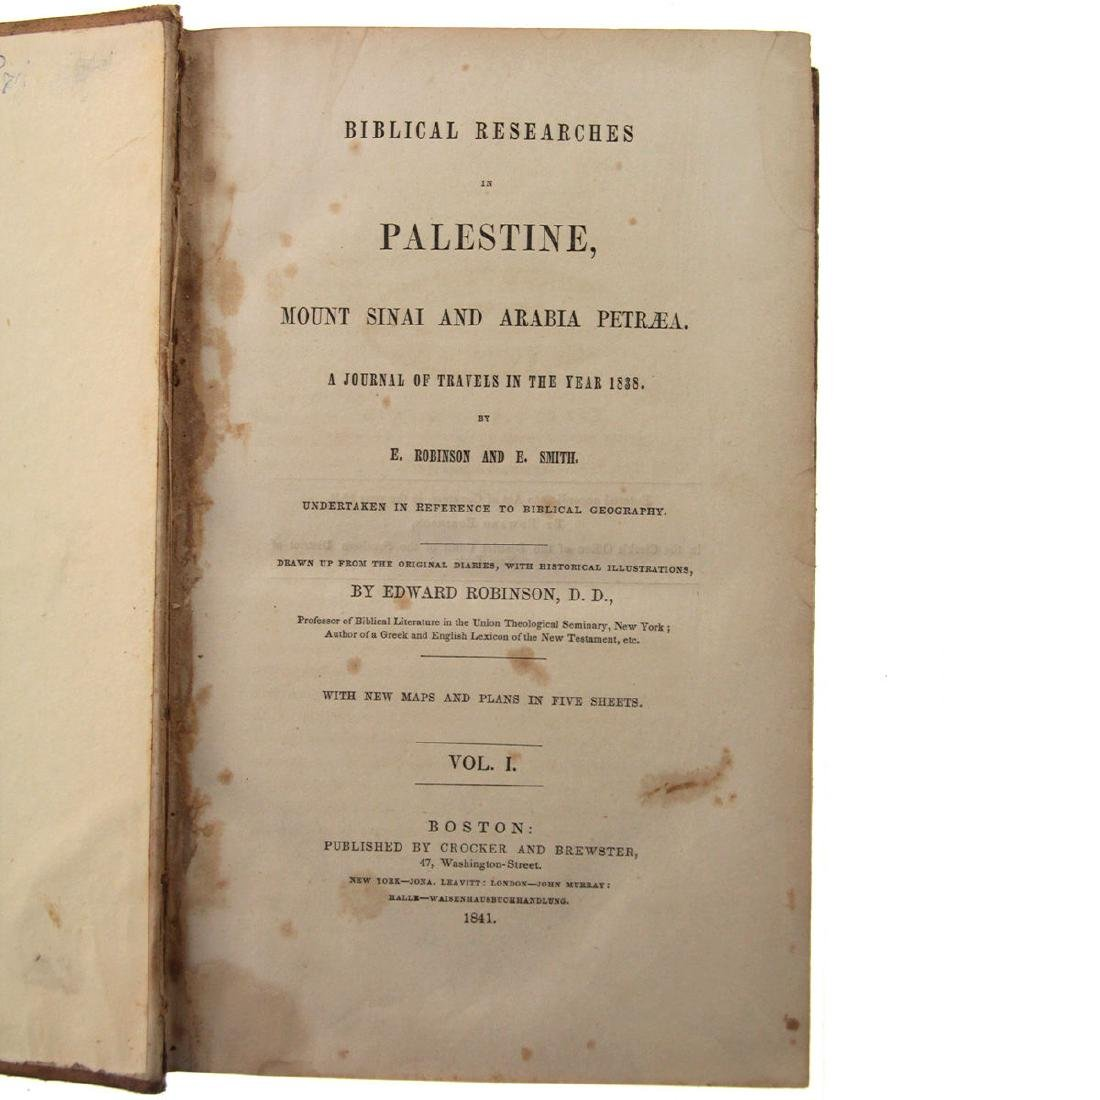 Biblical Researches in Palestine, Edward Robinson, - 5